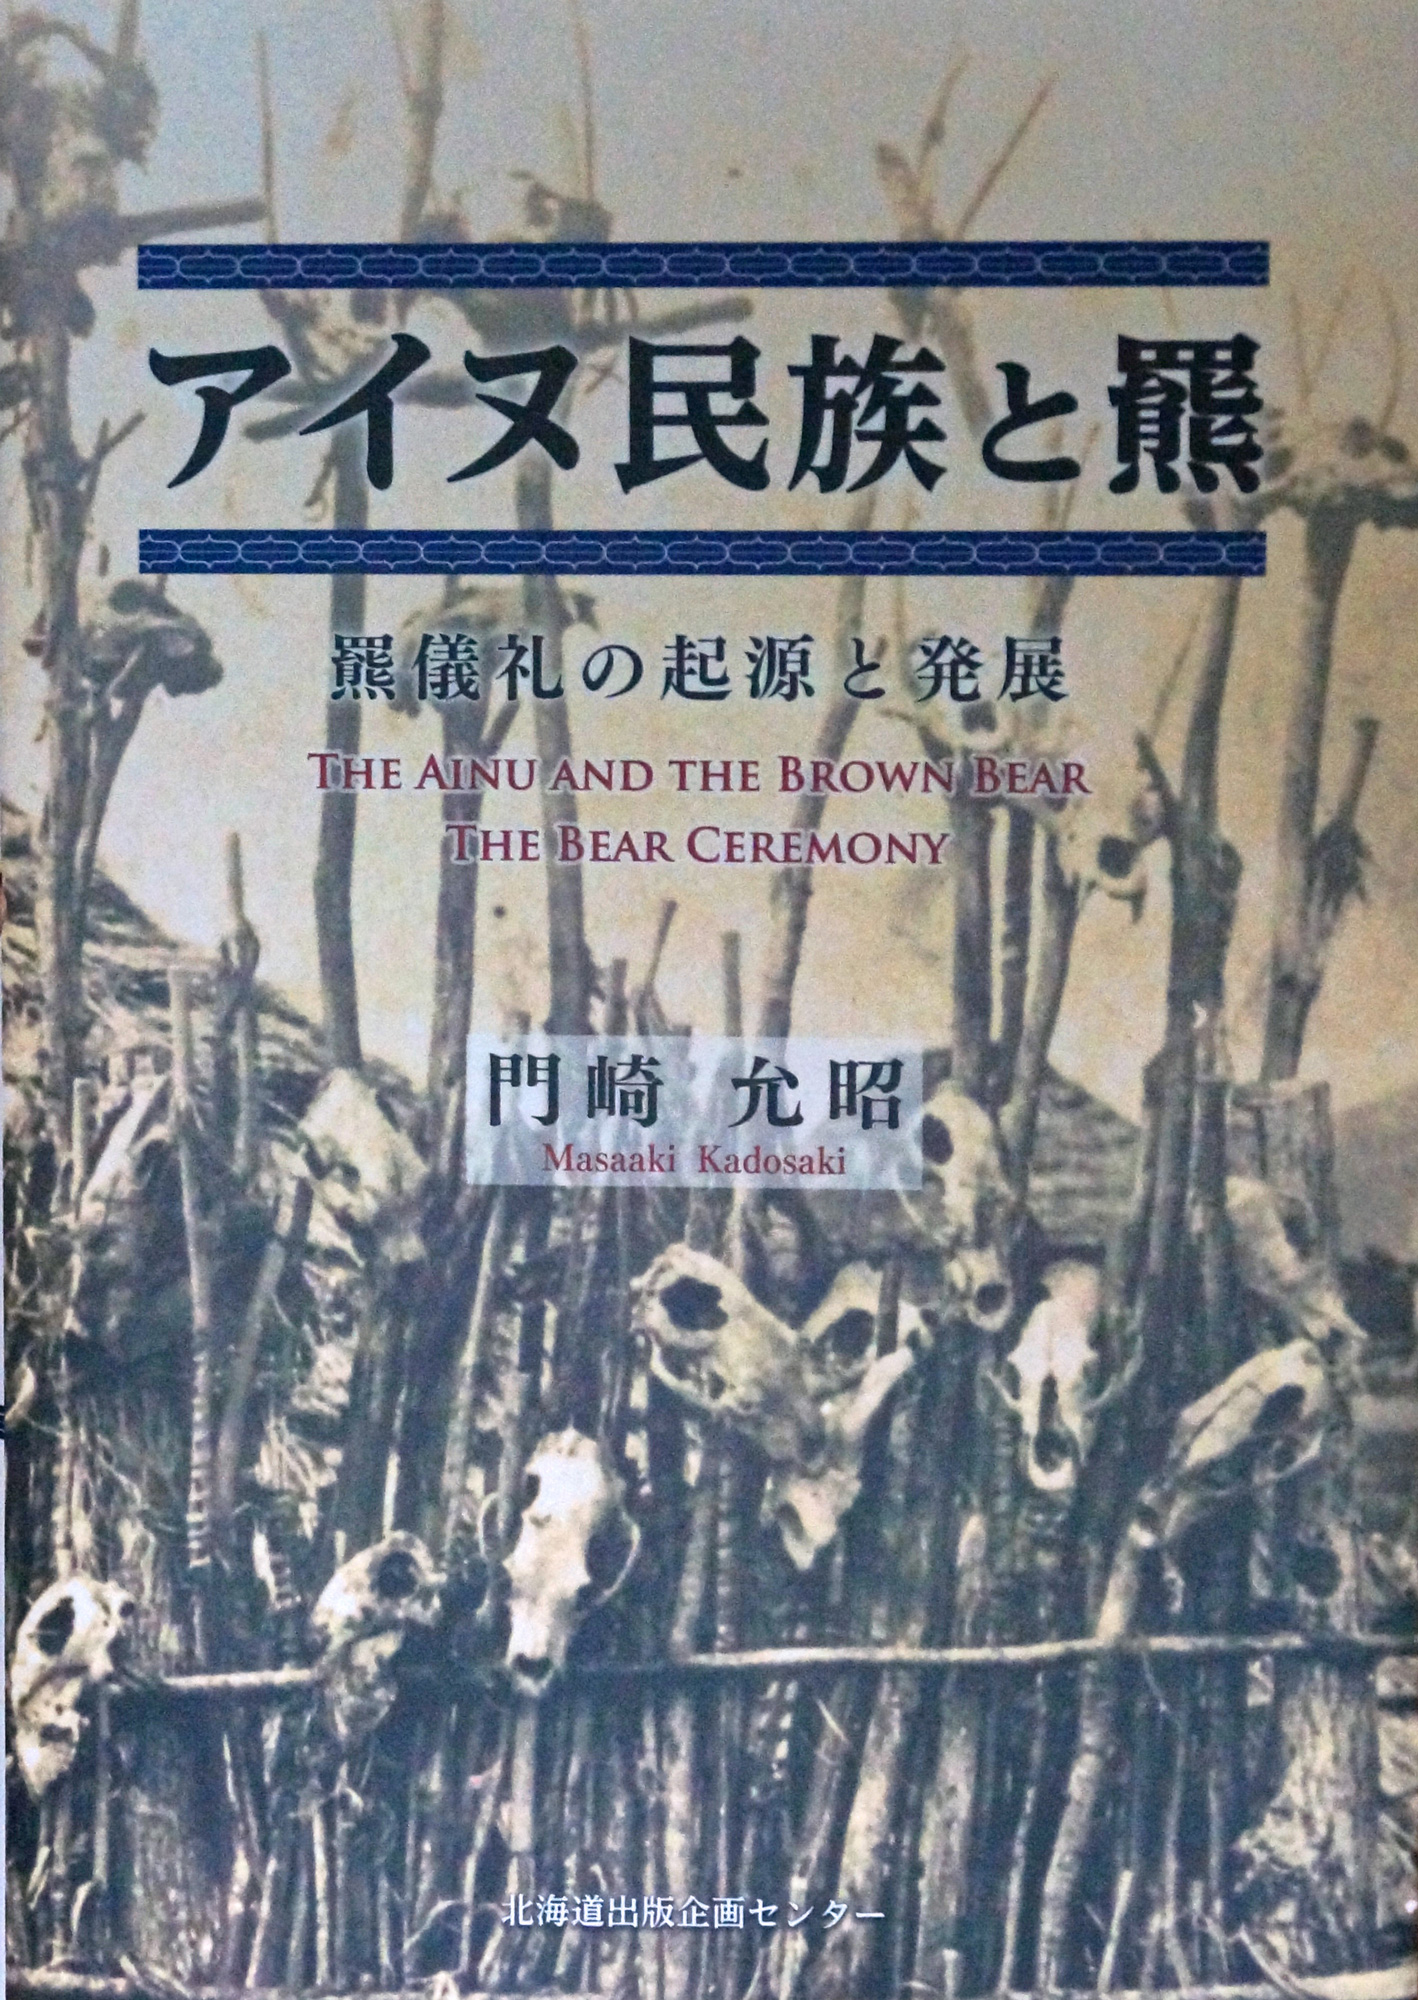 Ainu people and Brown Bear - the development of Ritual and ceremony for brown bear written by Dr. Masaaki Kadosaki